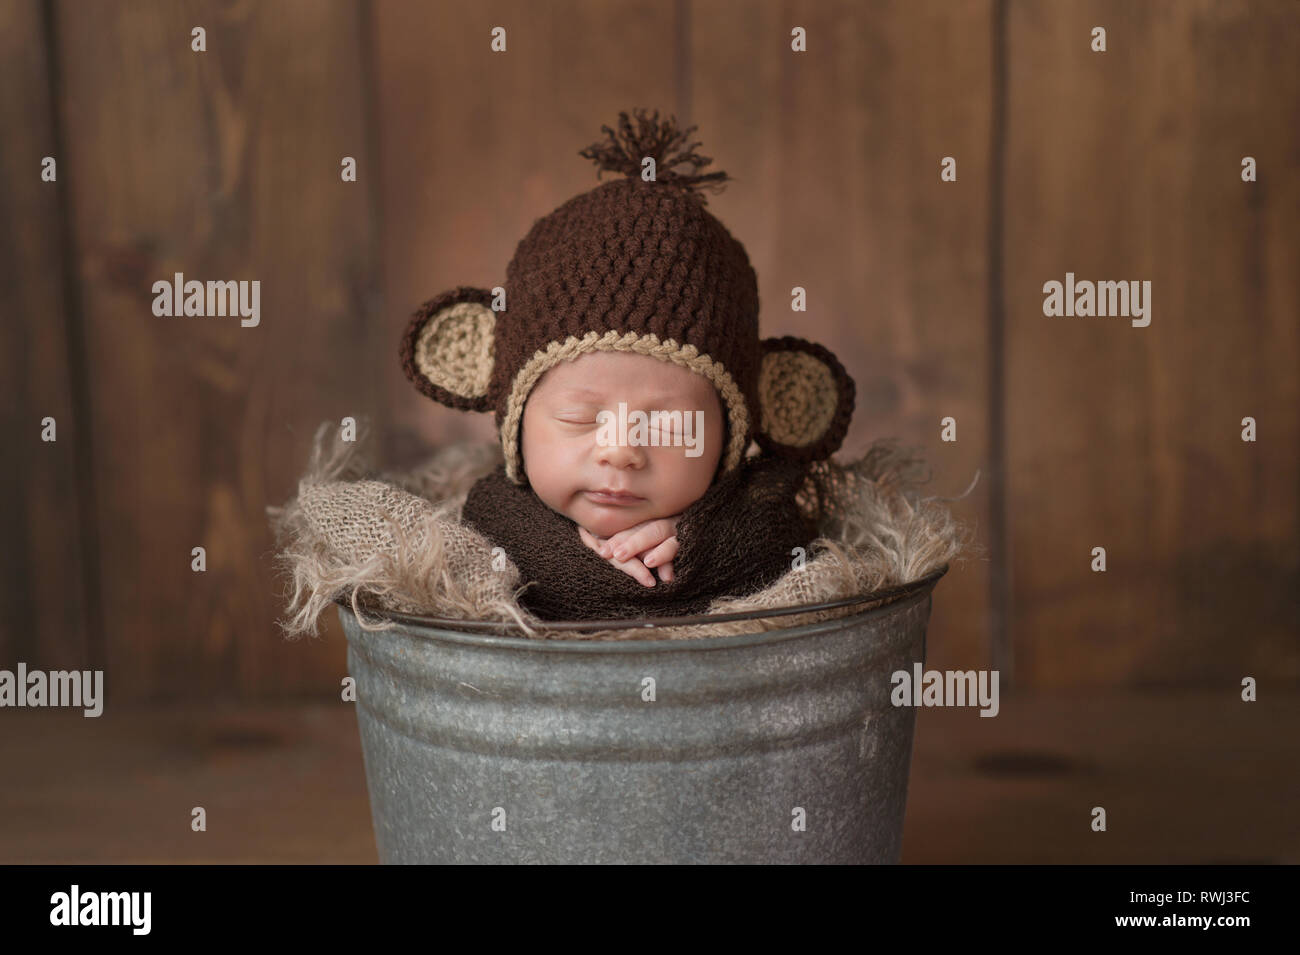 One week old newborn baby boy wearing a brown, crocheted monkey hat. He is sleeping in a galvanized steel bucket and has a slight grin on his face. - Stock Image